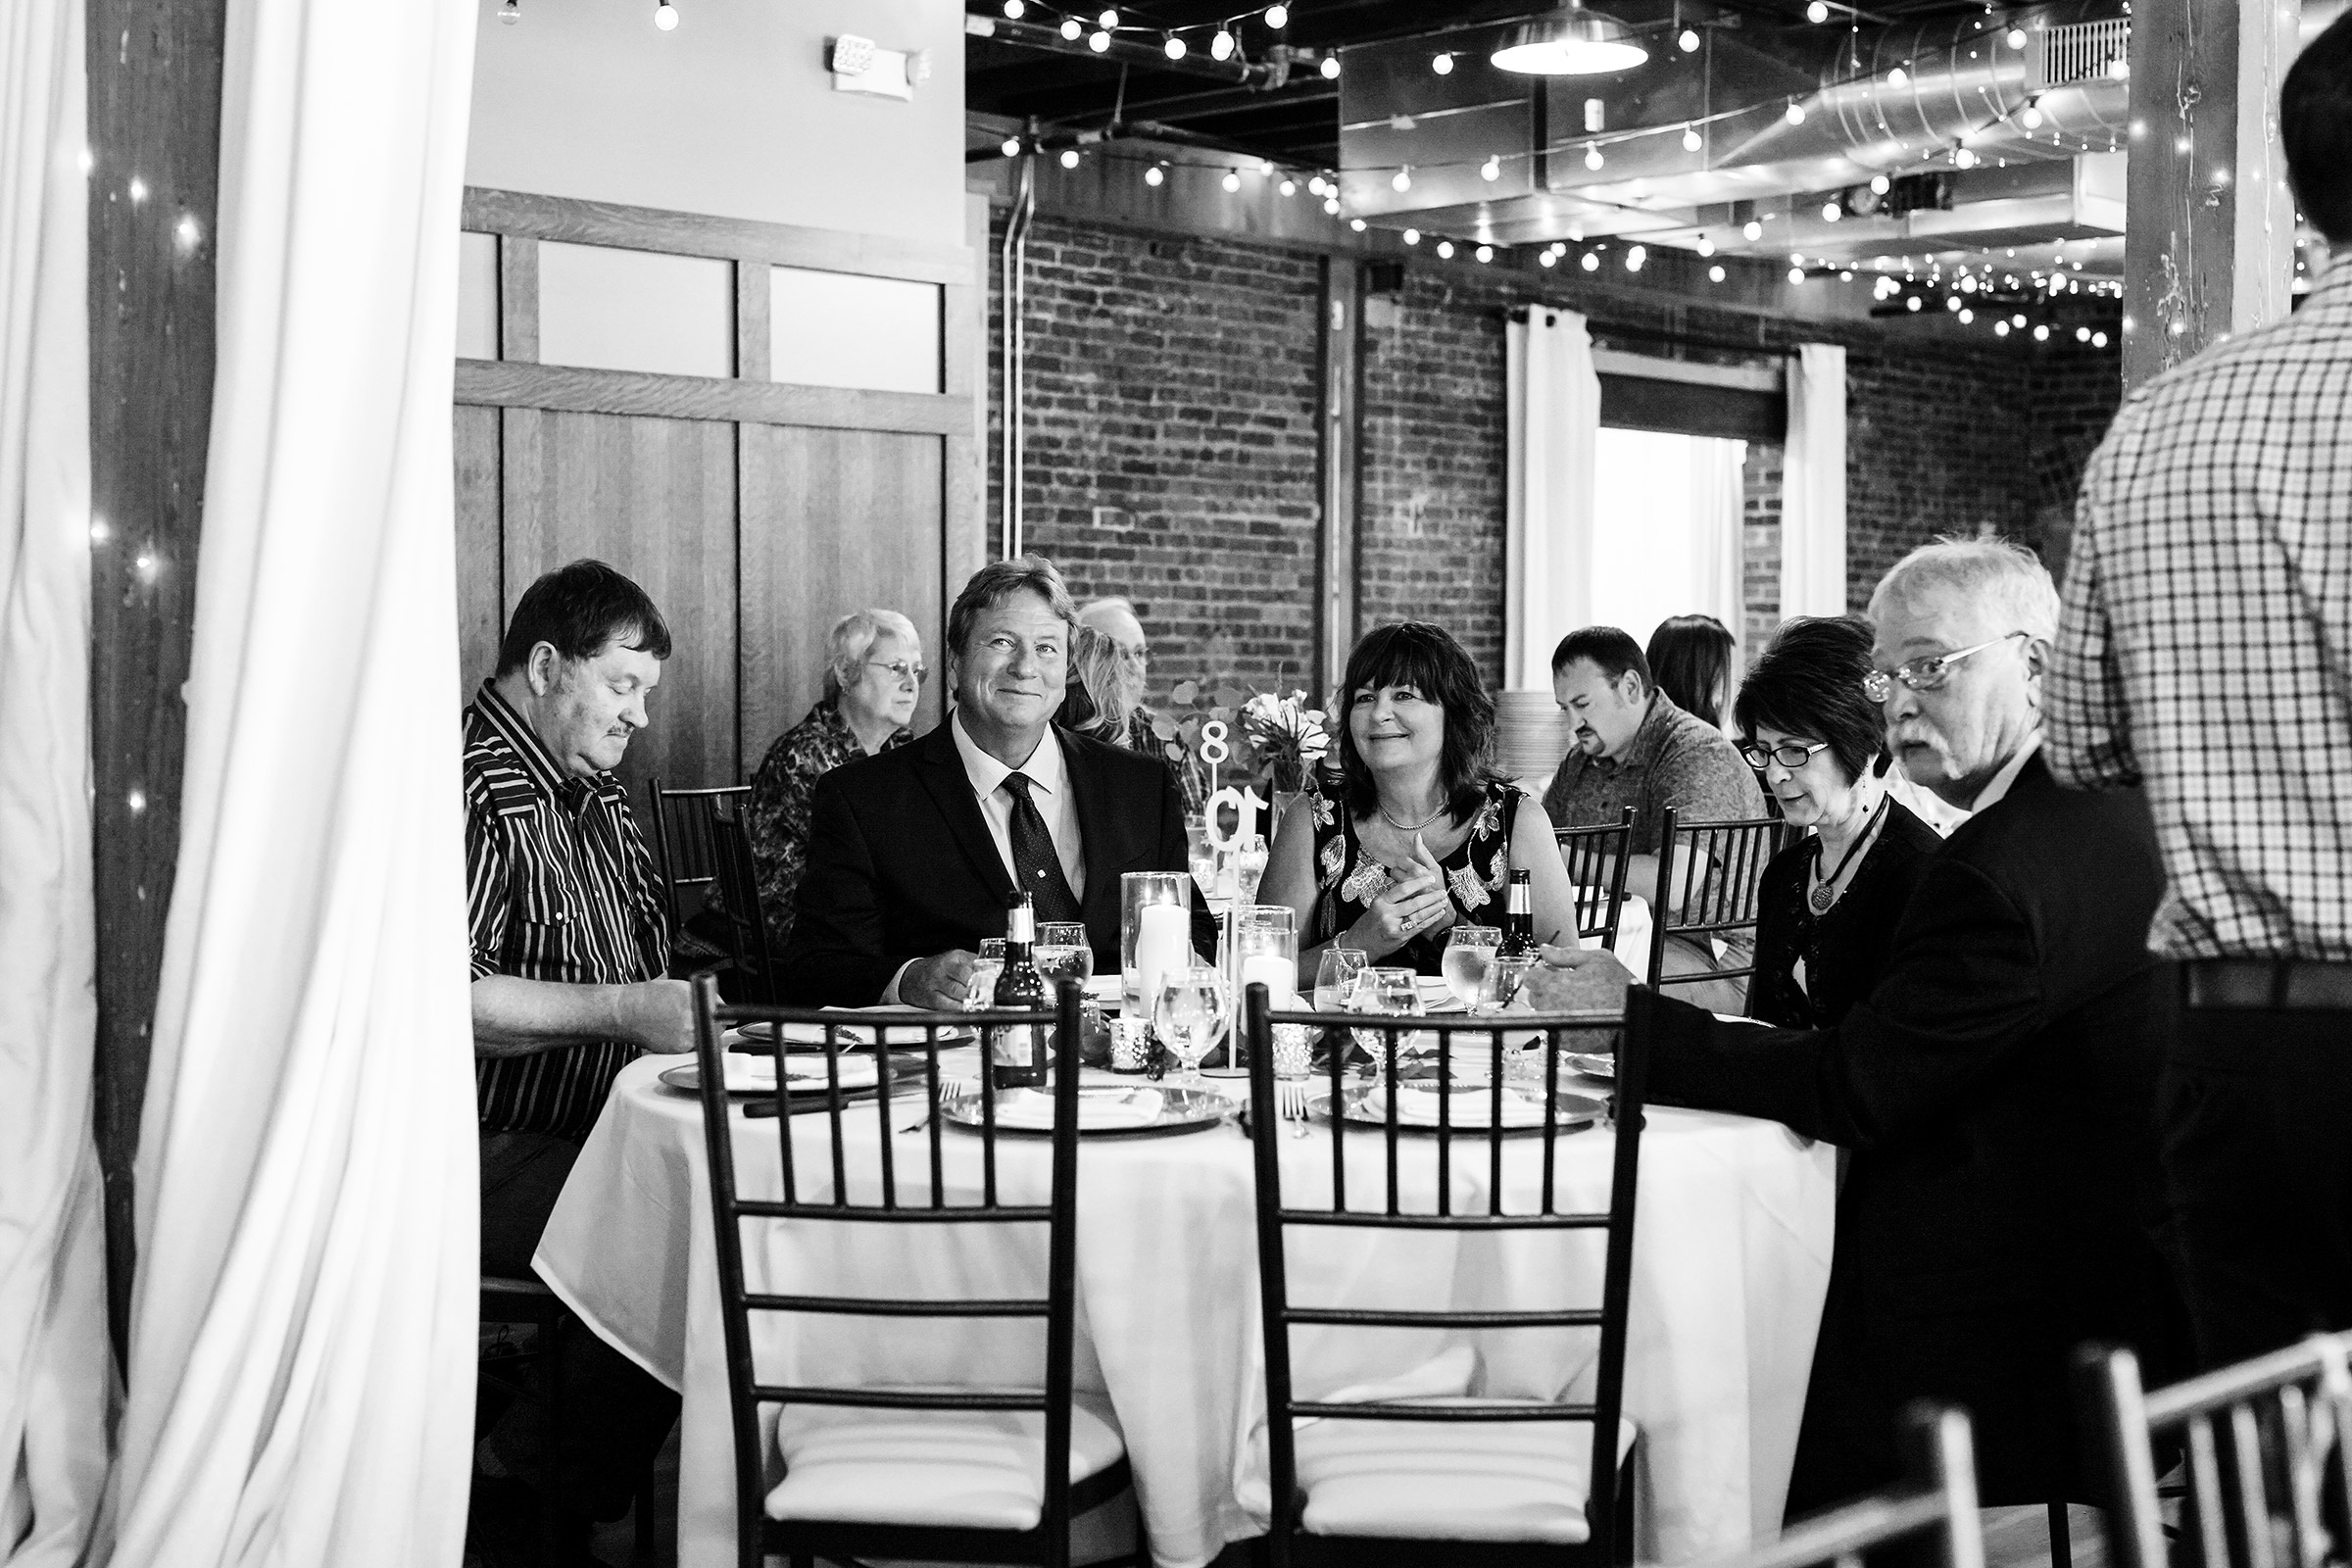 mr-mrs-hull-guests-watching-wedding-party-taproom-desmoines-iowa-raelyn-ramey-photography-537.jpg